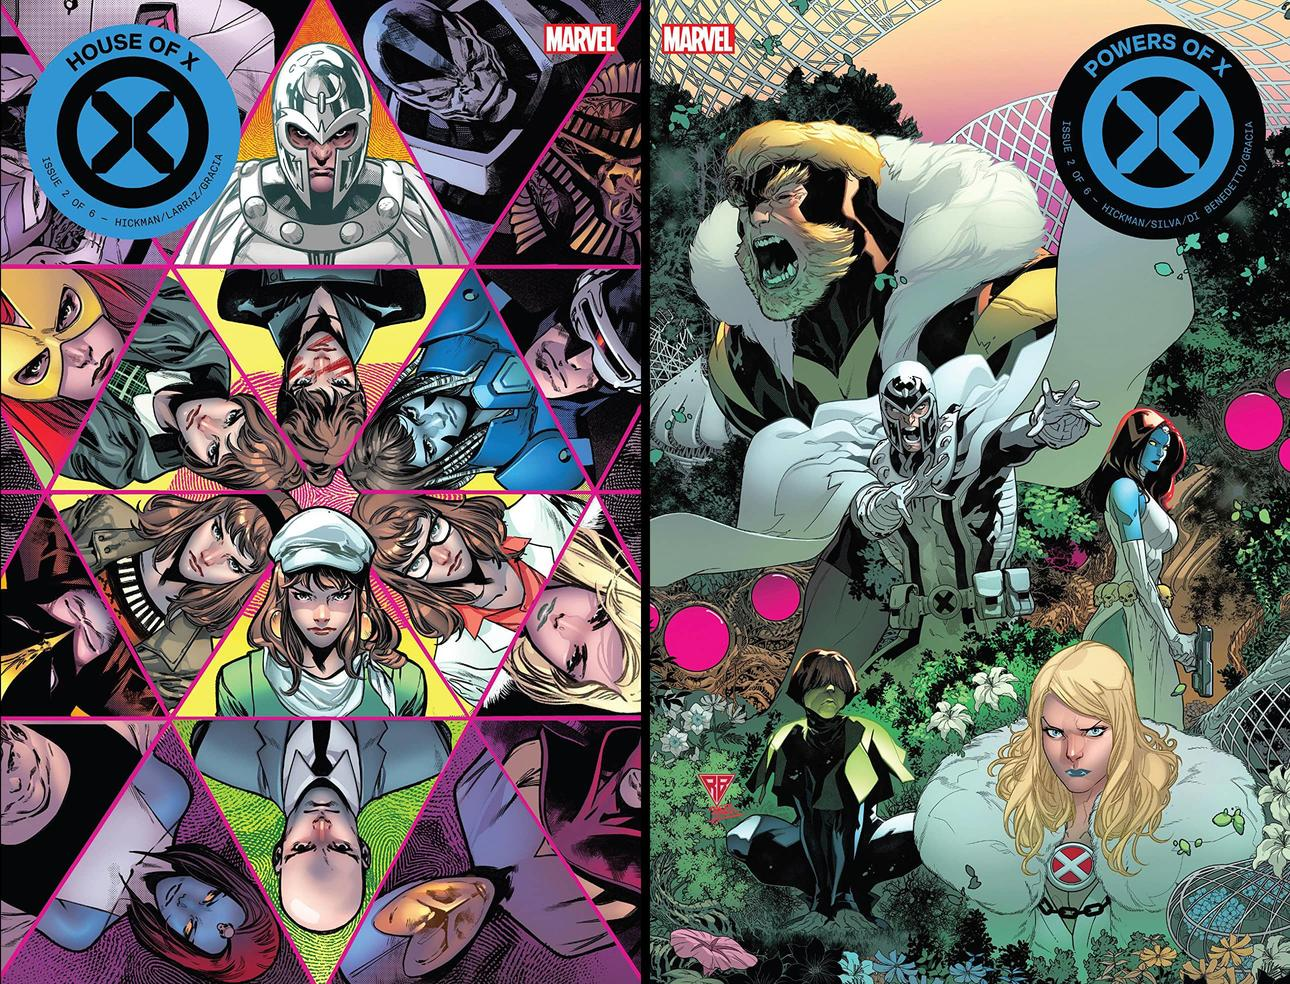 HOUSE OF X #2/POWERS OF X #2